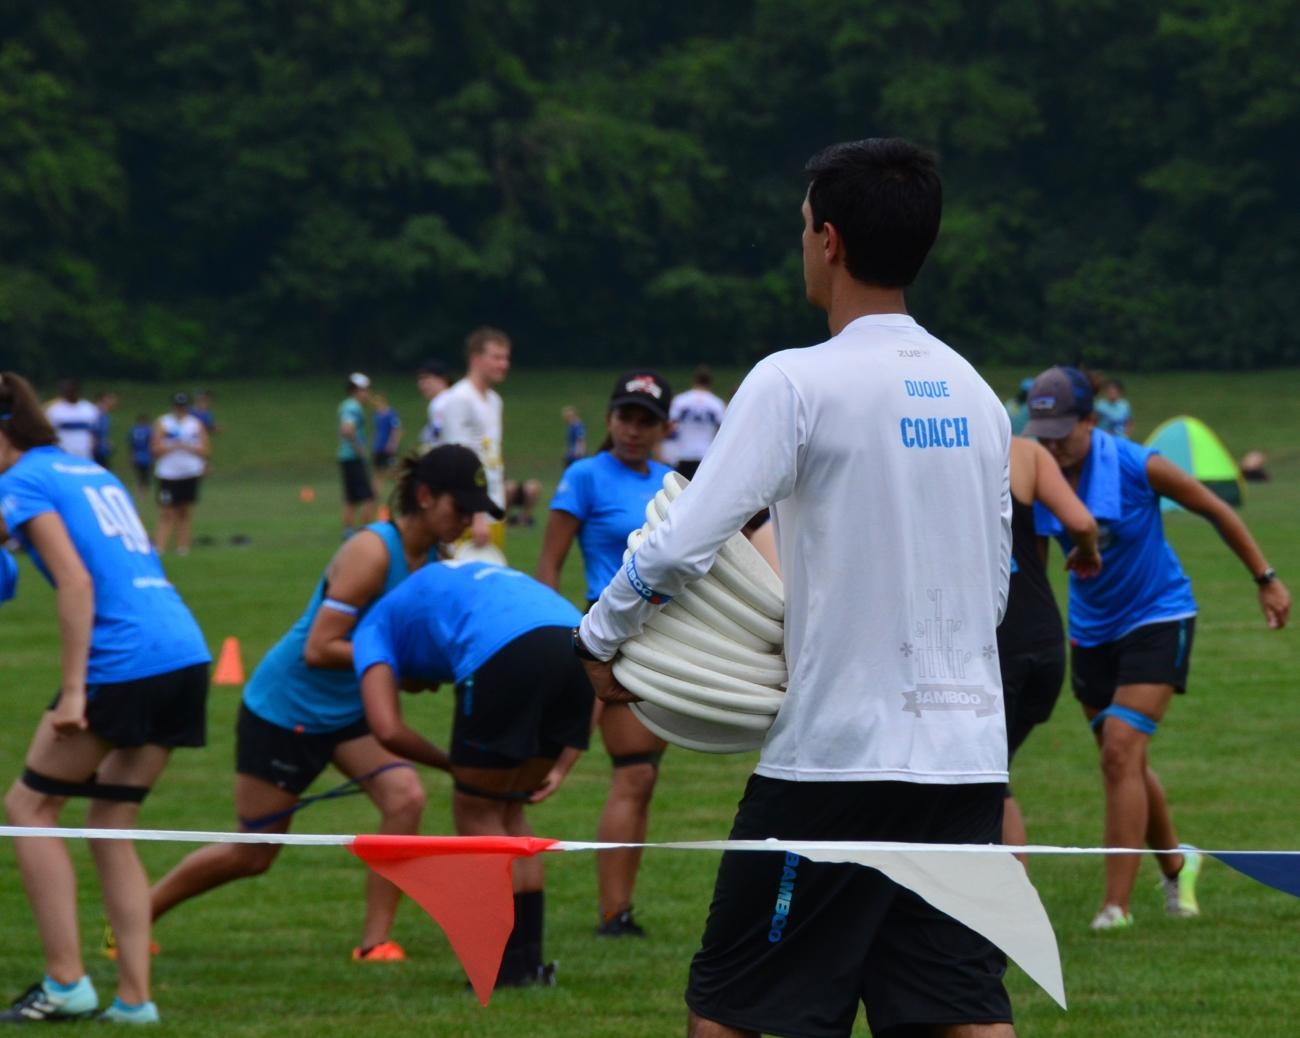 The World Ultimate Club Championships are taking place July 14-21 in Cincinnati. Well, Lebanon. Well, Mason. It's pretty much Lebanon, though the opening and closing nights are taking place at Mason High School. 128 teams from 36 countries are competing in men's, women's, and mixed divisions for the prize of being the best ultimate team. This is not disc golf. This is ultimate. Tickets are $5 per day. LOCATION: 900 McClure Road, Lebanon, Ohio (45035) / Image: Leah Zipperstein, Cincinnati Refined // Published: 7.16.18